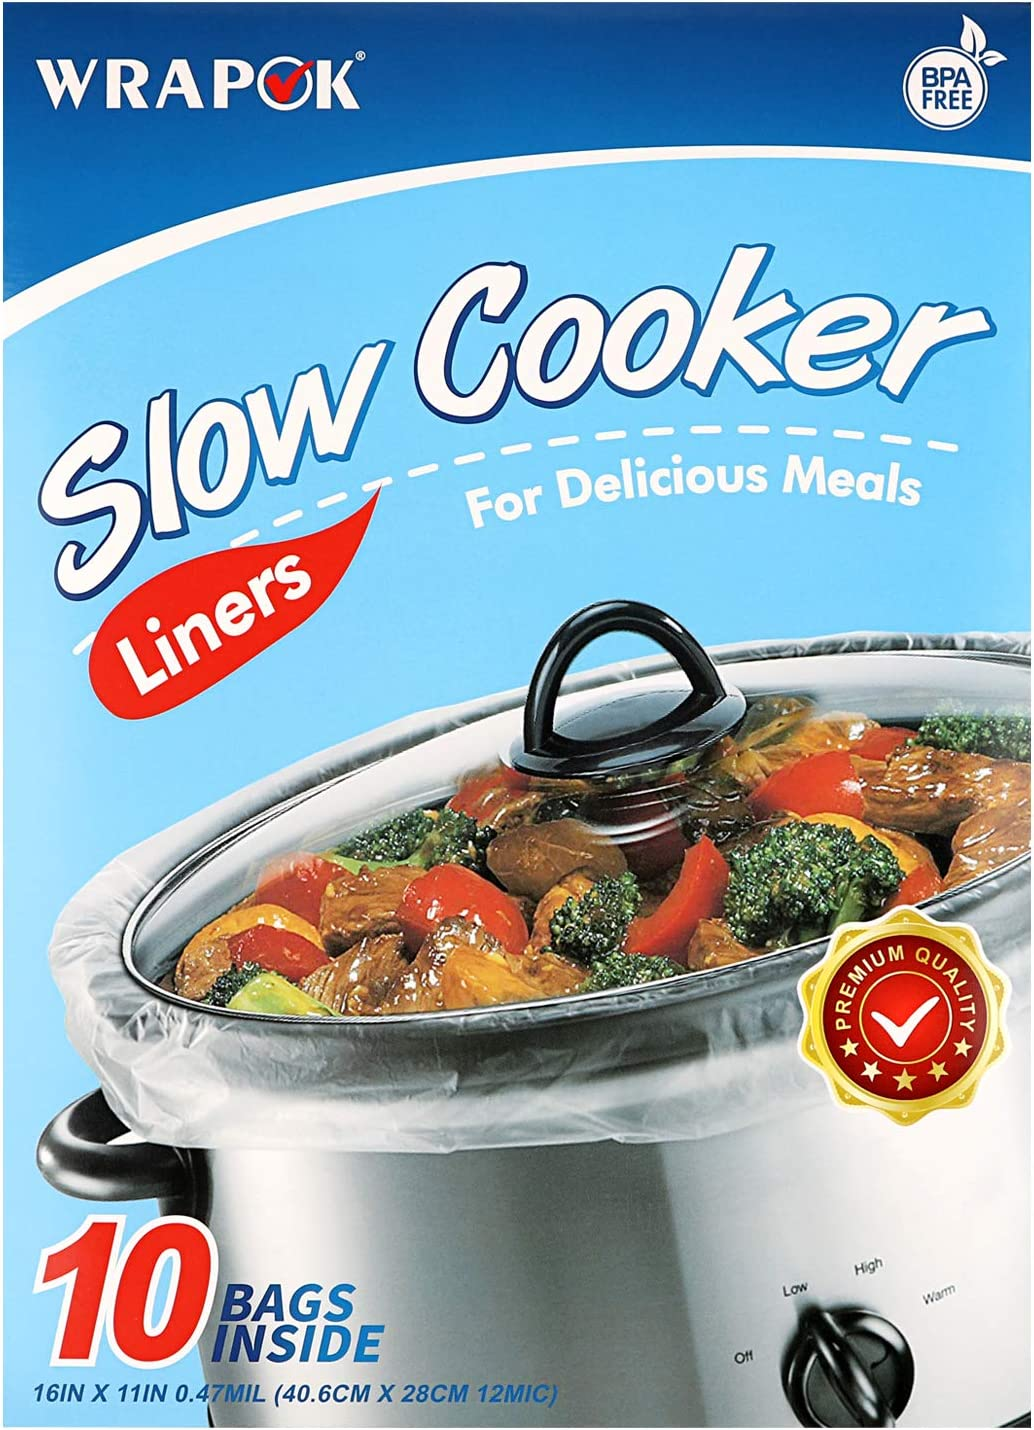 WRAPOK Slow Cooker Liners Kitchen Disposable Cooking Bags BPA Free for Oval or Round Pot, Small Size 11 x 16 Inch, Fits 1 to 3 Quarts - 1 Pack (10 Bags Total)